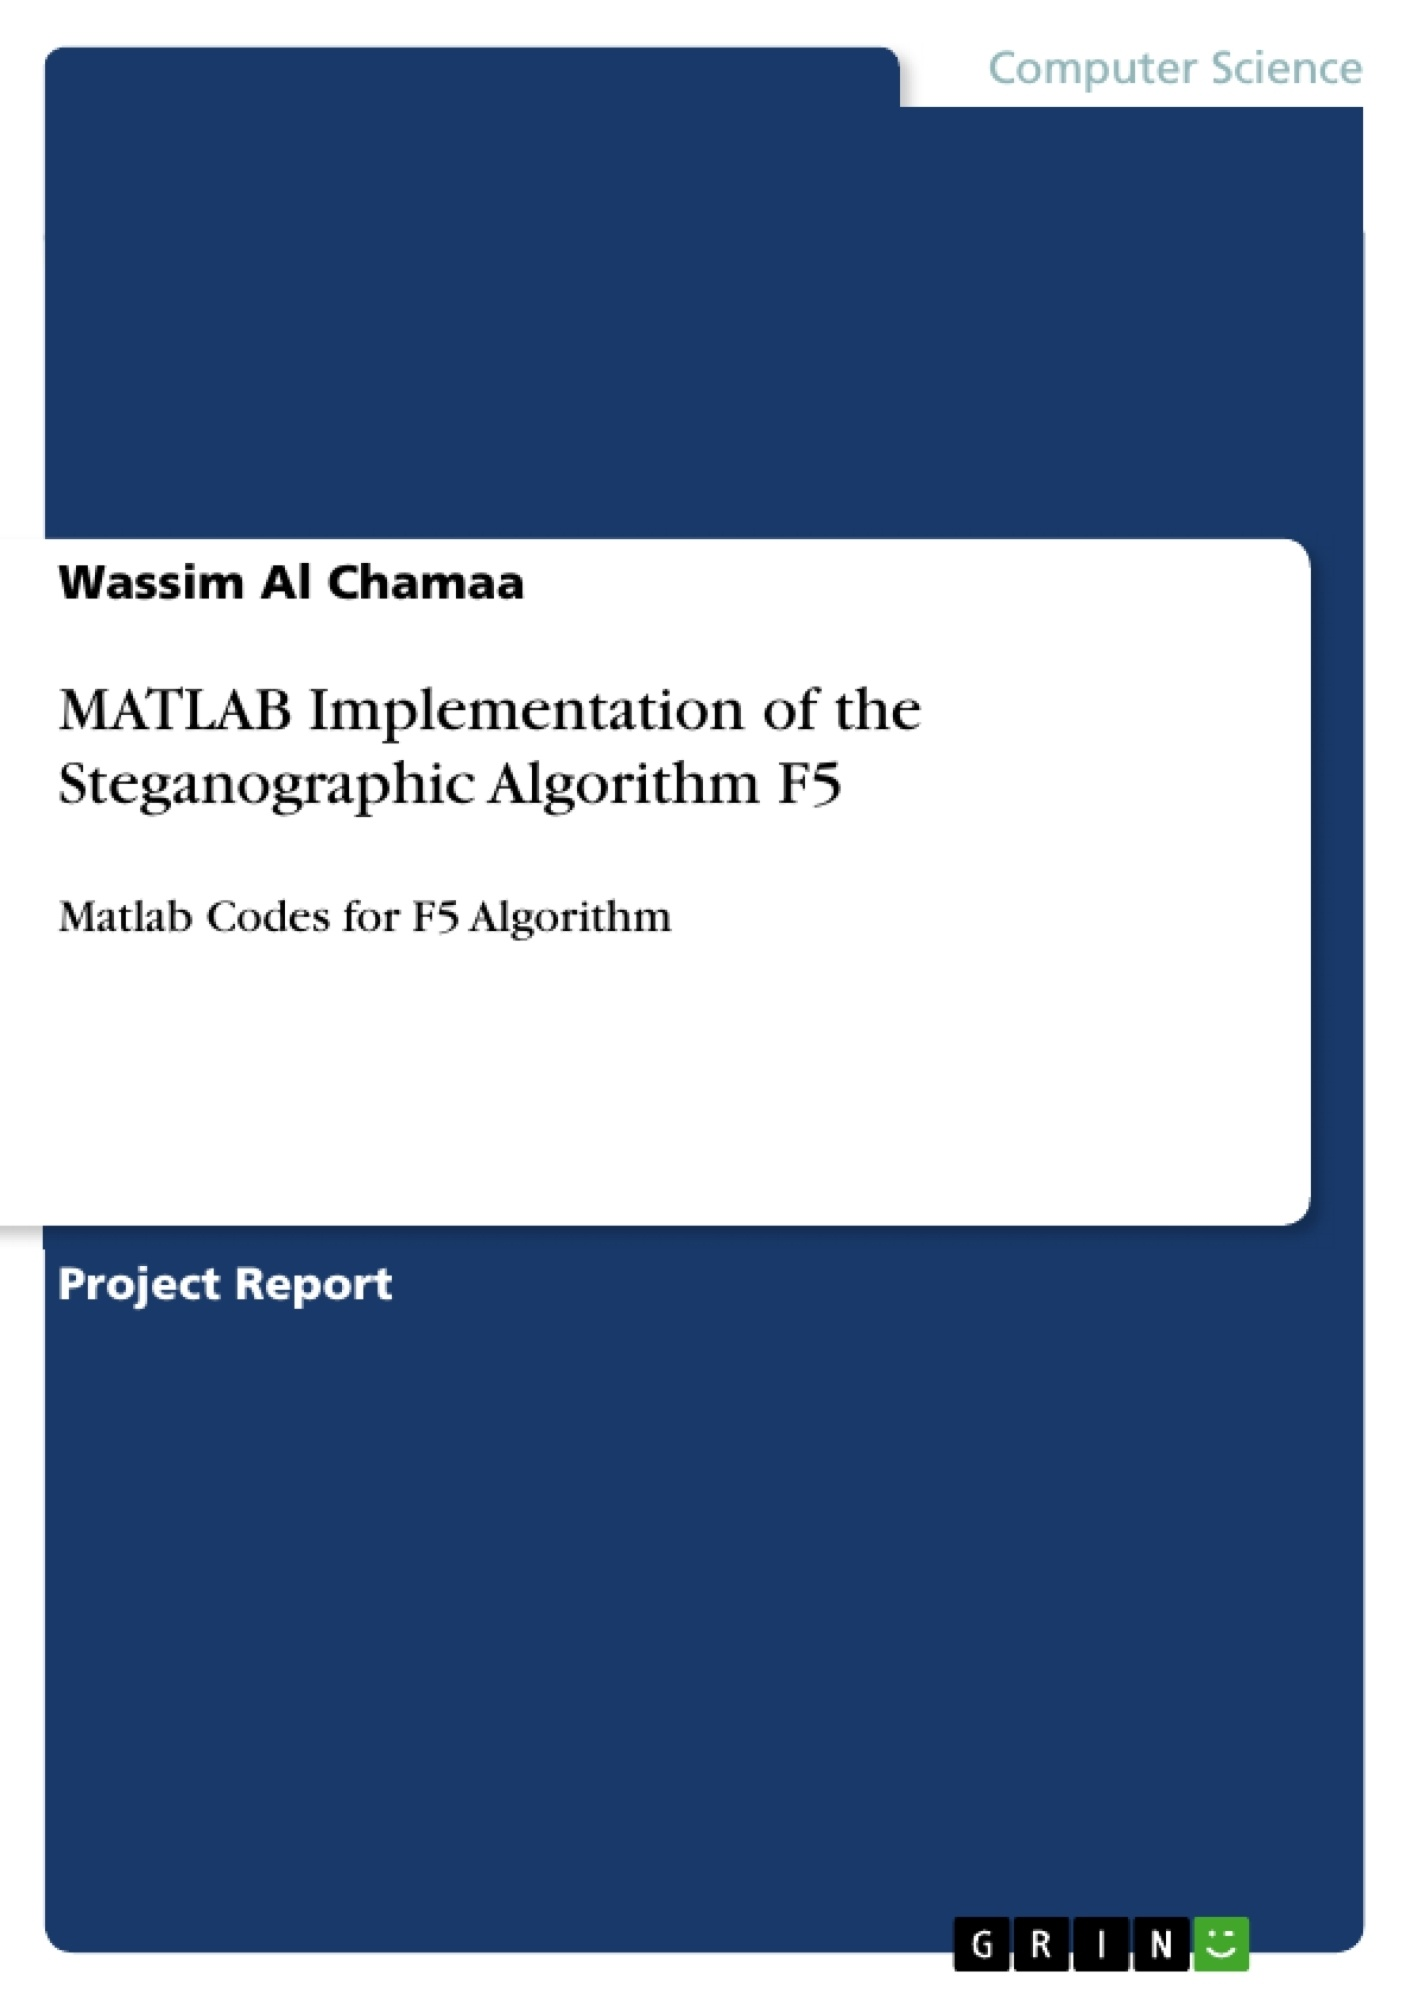 GRIN - MATLAB Implementation of the Steganographic Algorithm F5